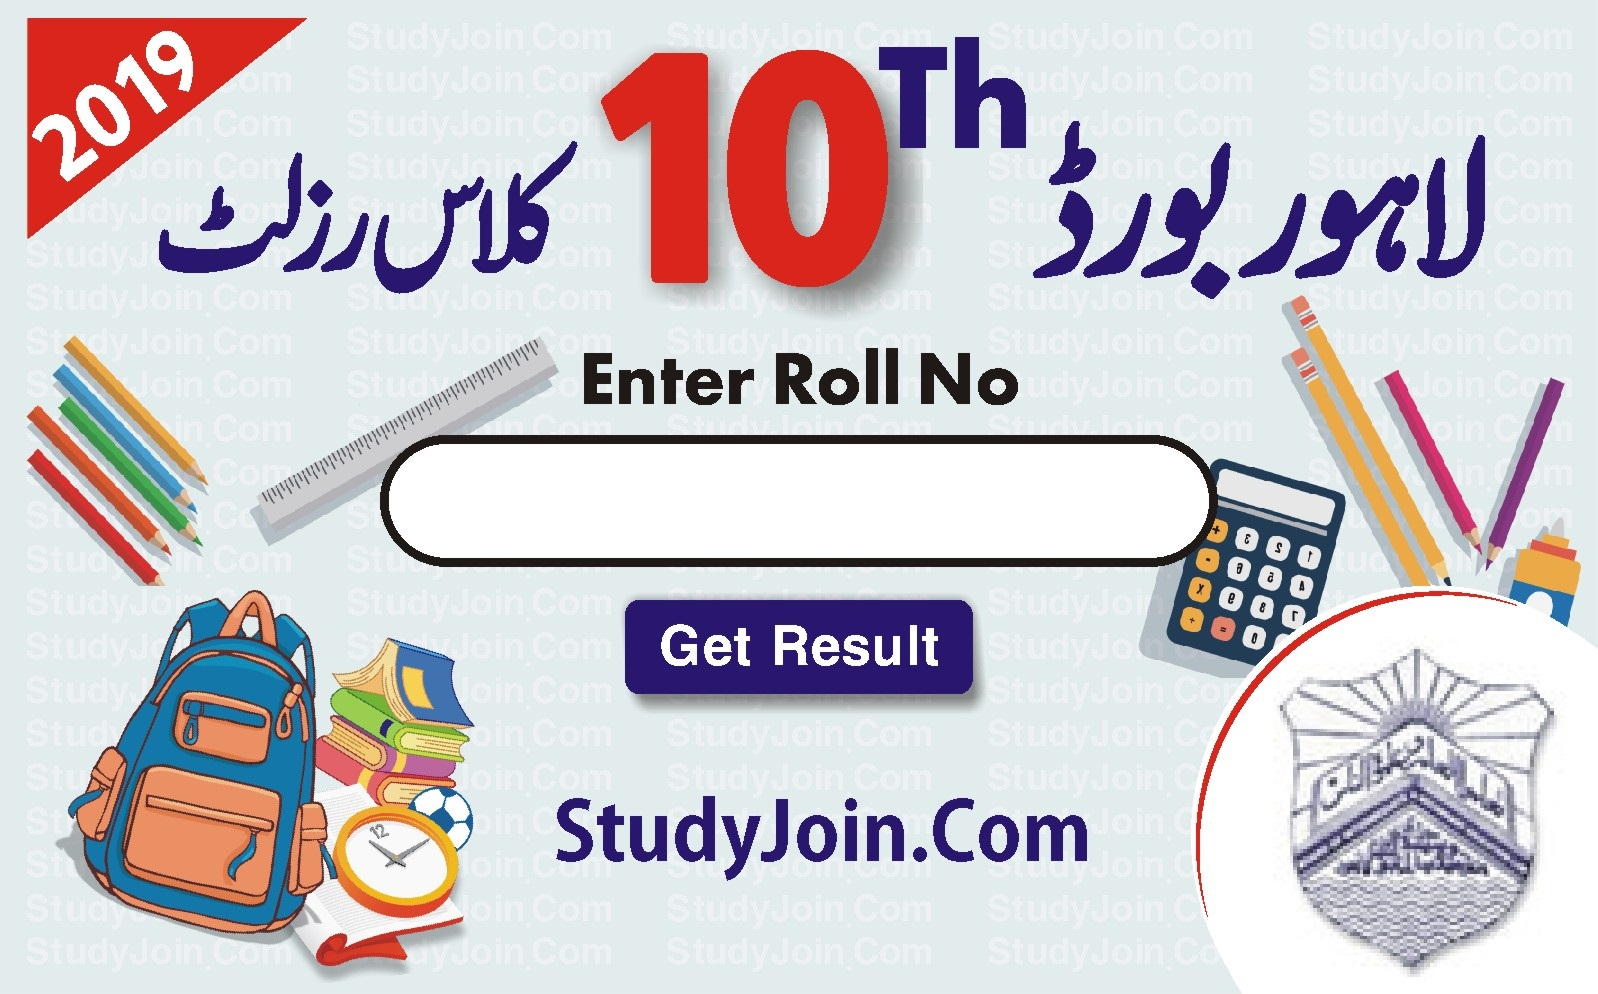 bise lahore 10th result 2019, bise lahore matric result 2019, bise lahore matric result 2019, bise lahore result 2019, bise lahore 9th result 2019, bise lahore inter result 2019, bise lahore result 2019, matric result 2019 lahore board, lahore board result 2019